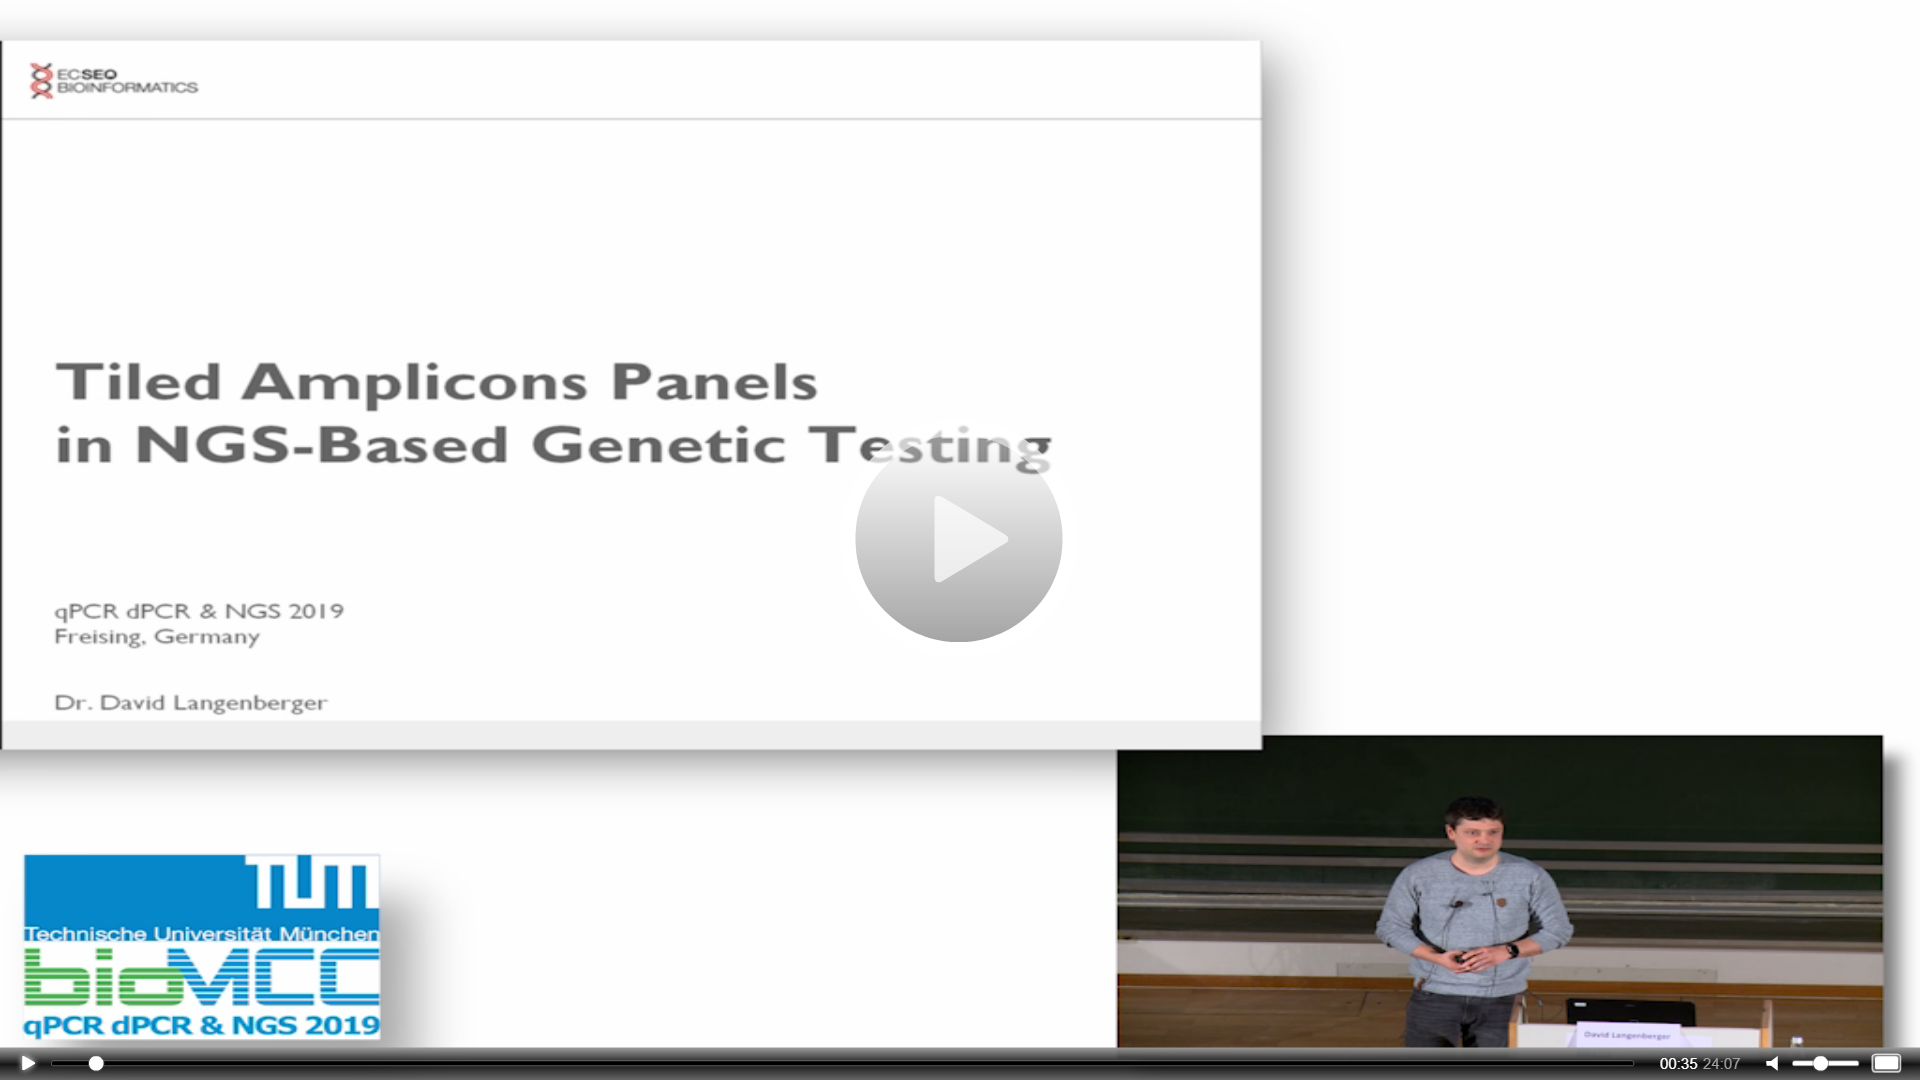 Tiled Amplicons Panels in NGS-Based Genetic Testing